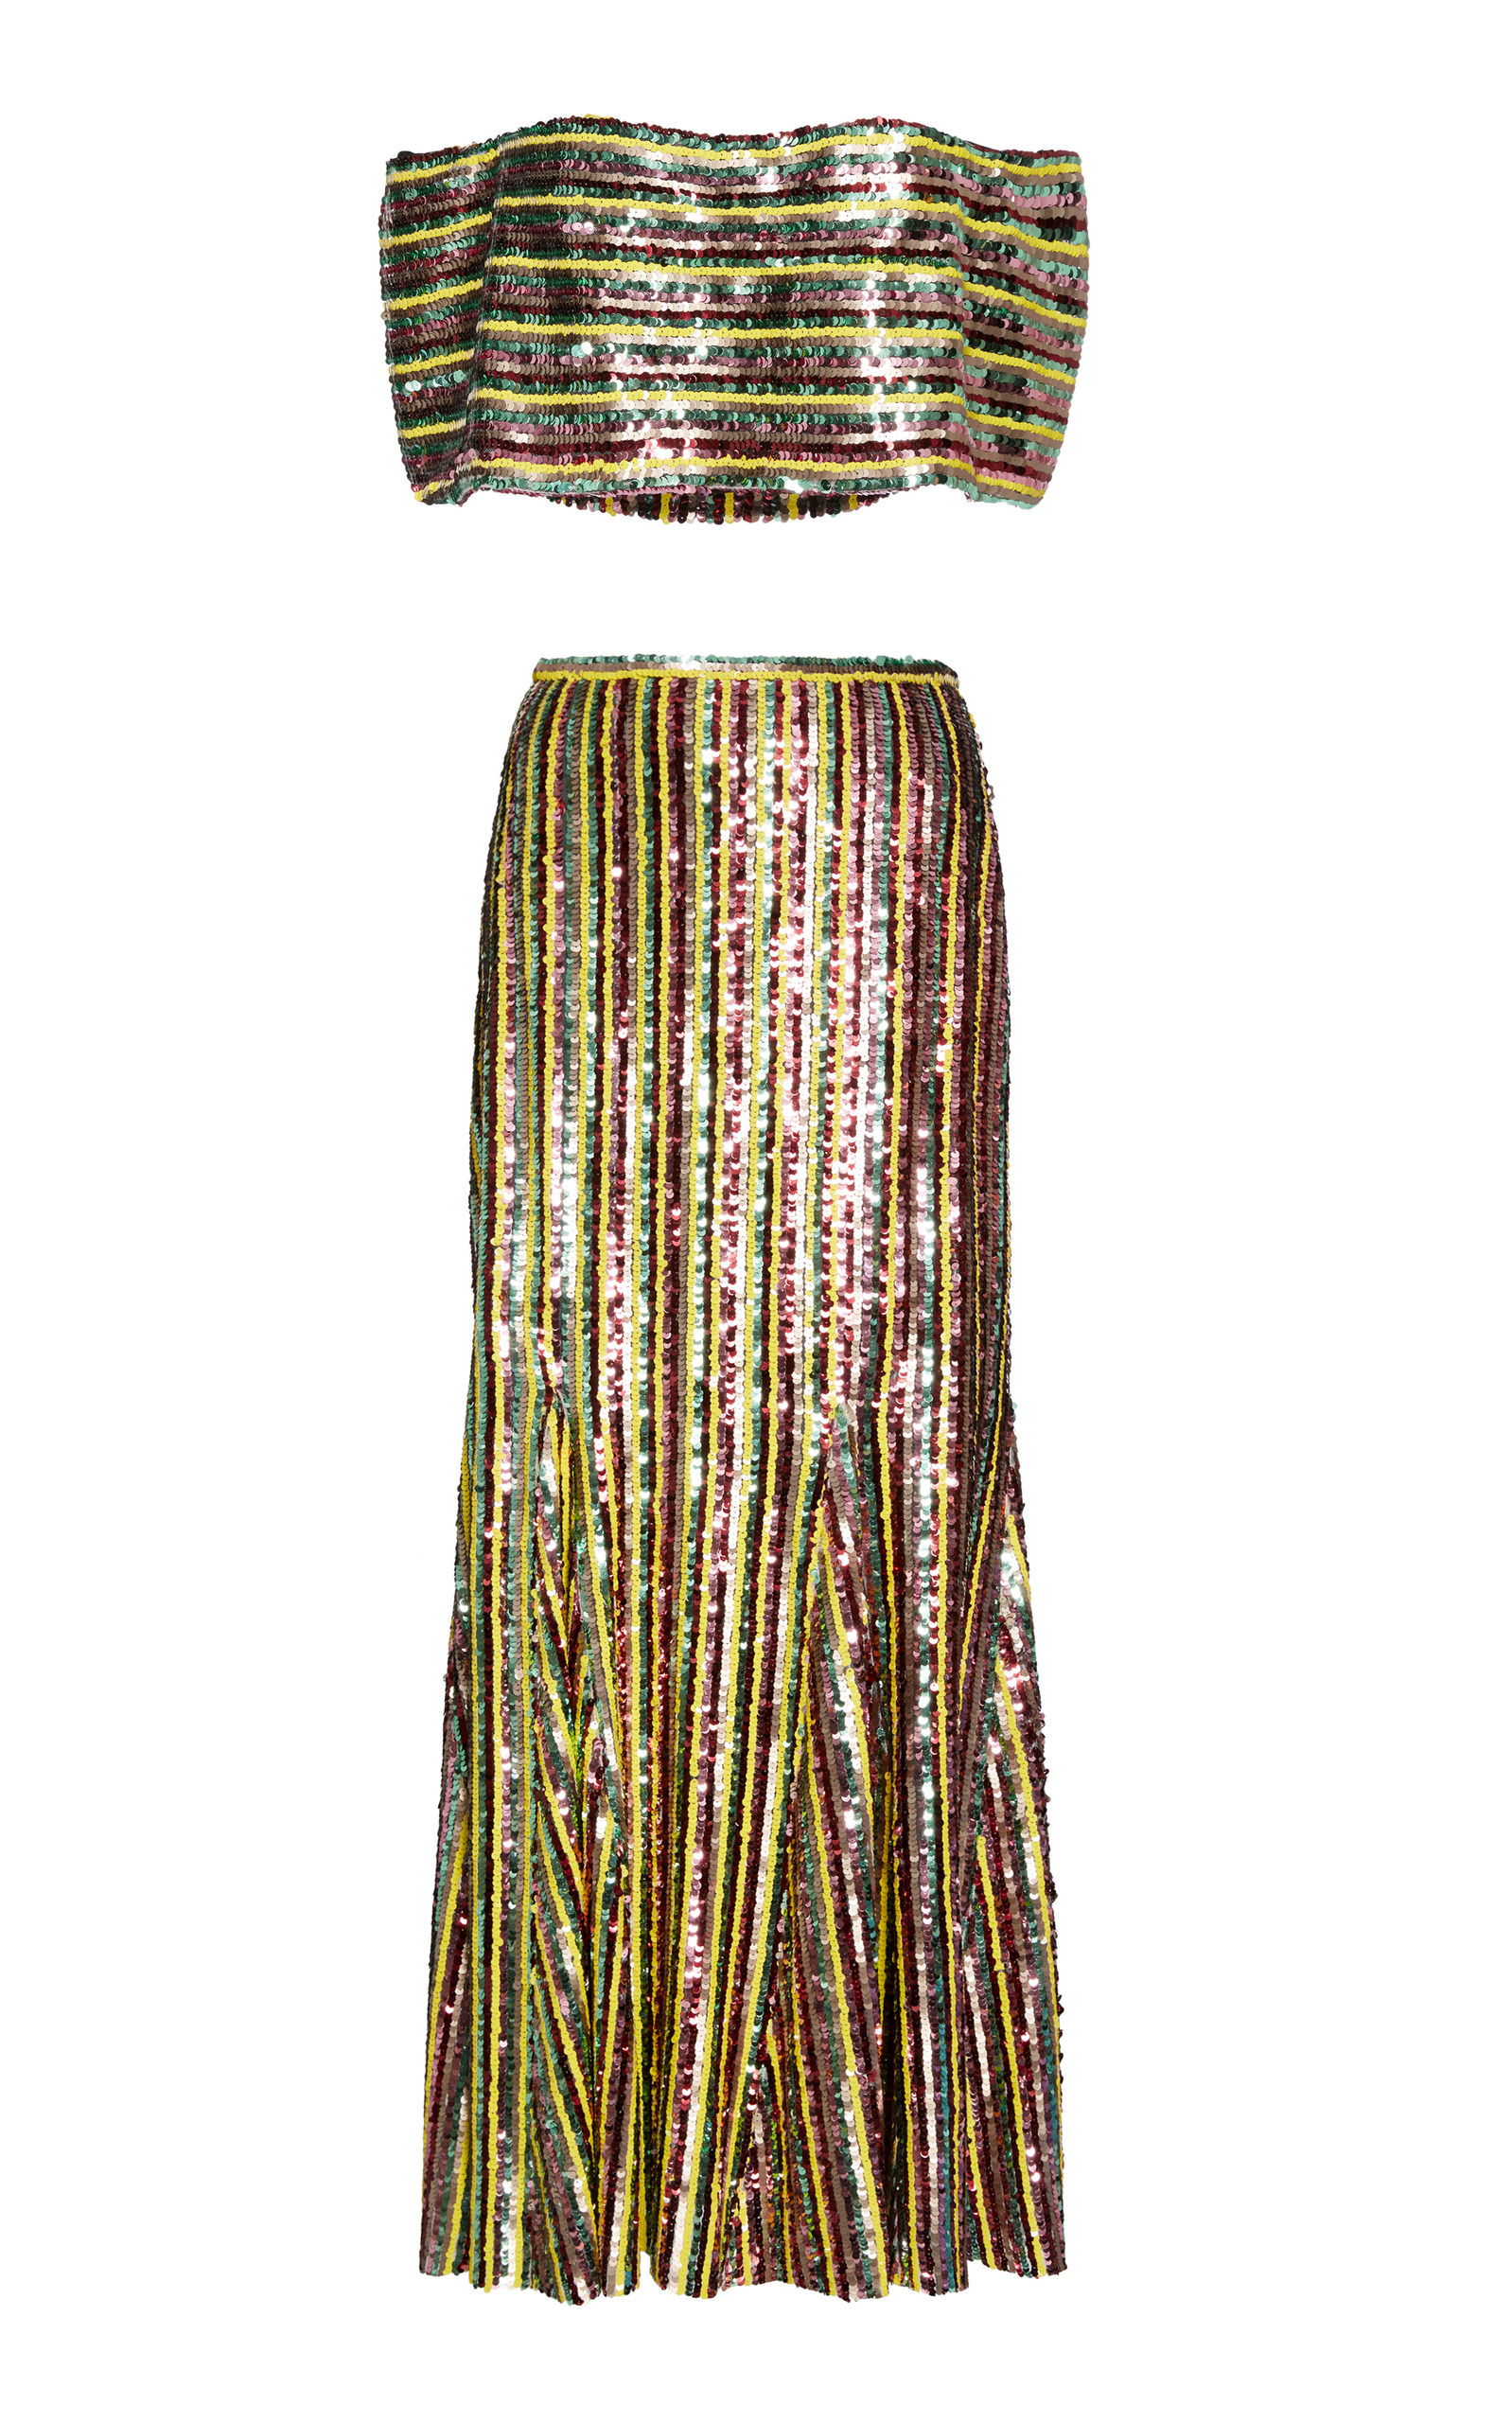 SANDRA MANSOUR M'O Exclusive Beaded Tulle Top And Skirt Set in Stripe